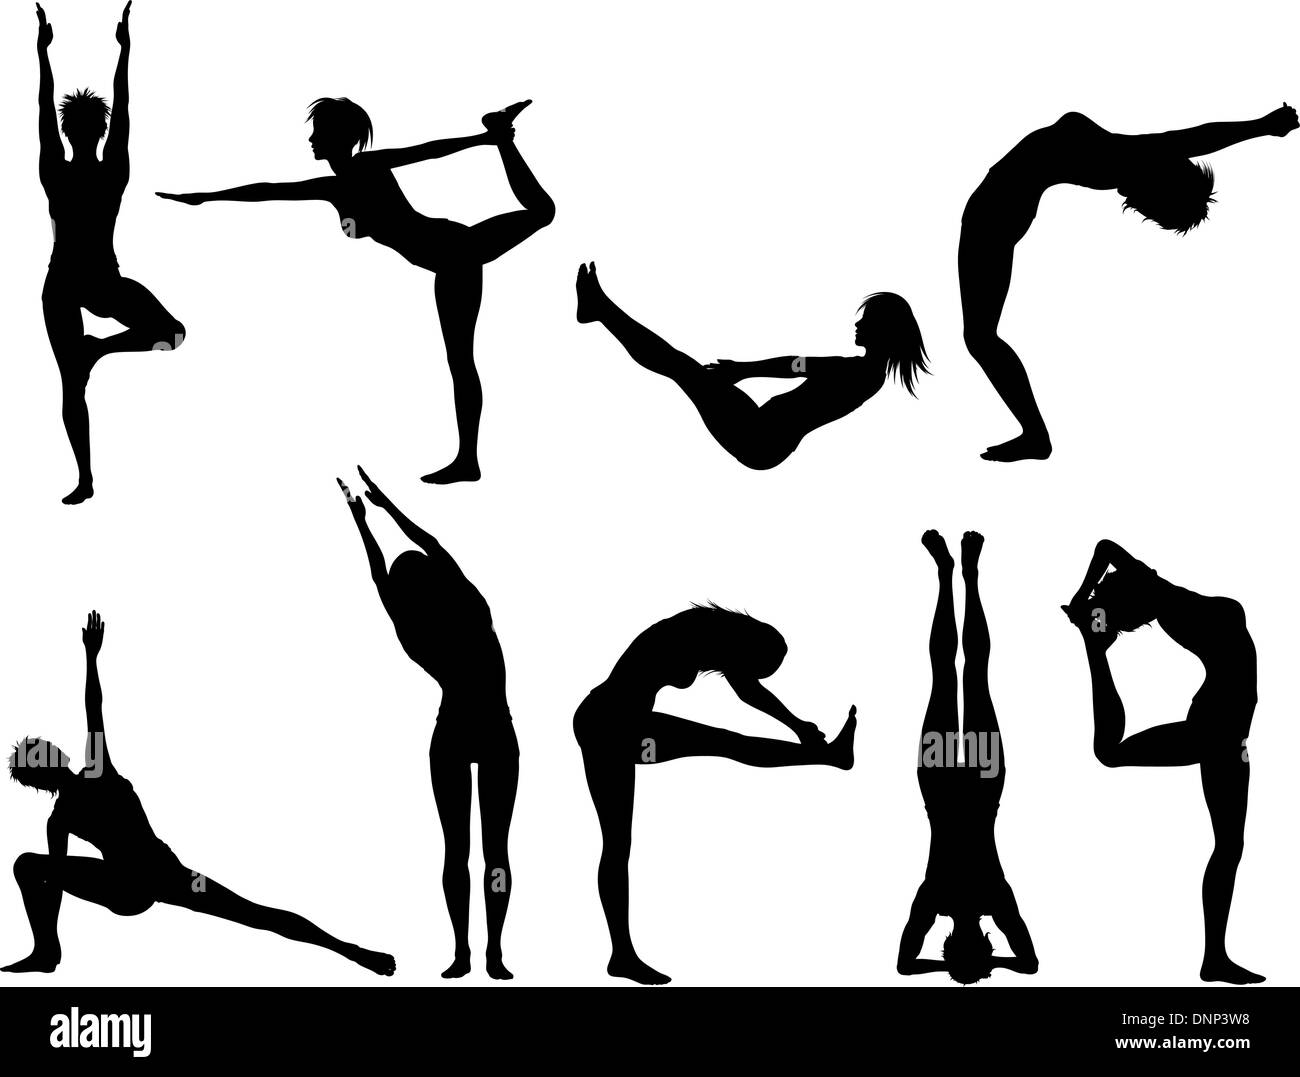 Silhouettes of females in various yoga poses - Stock Image